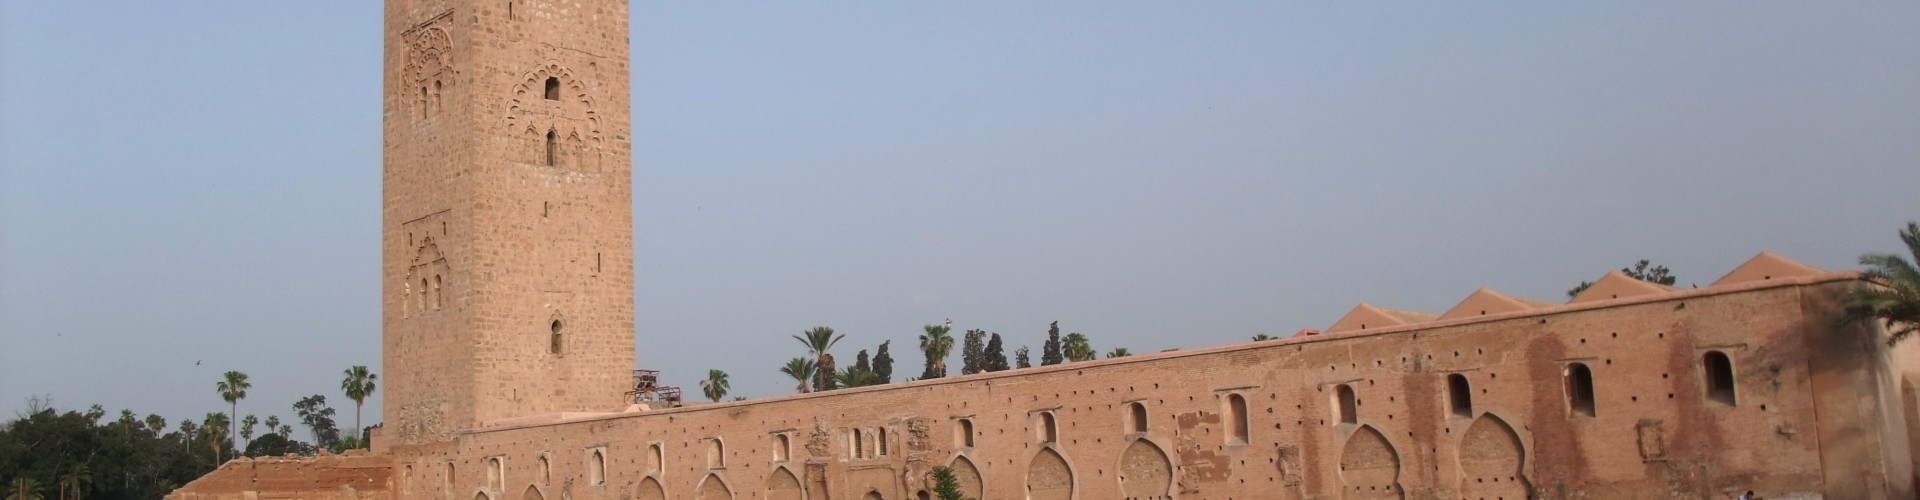 Morocco - Marrakech